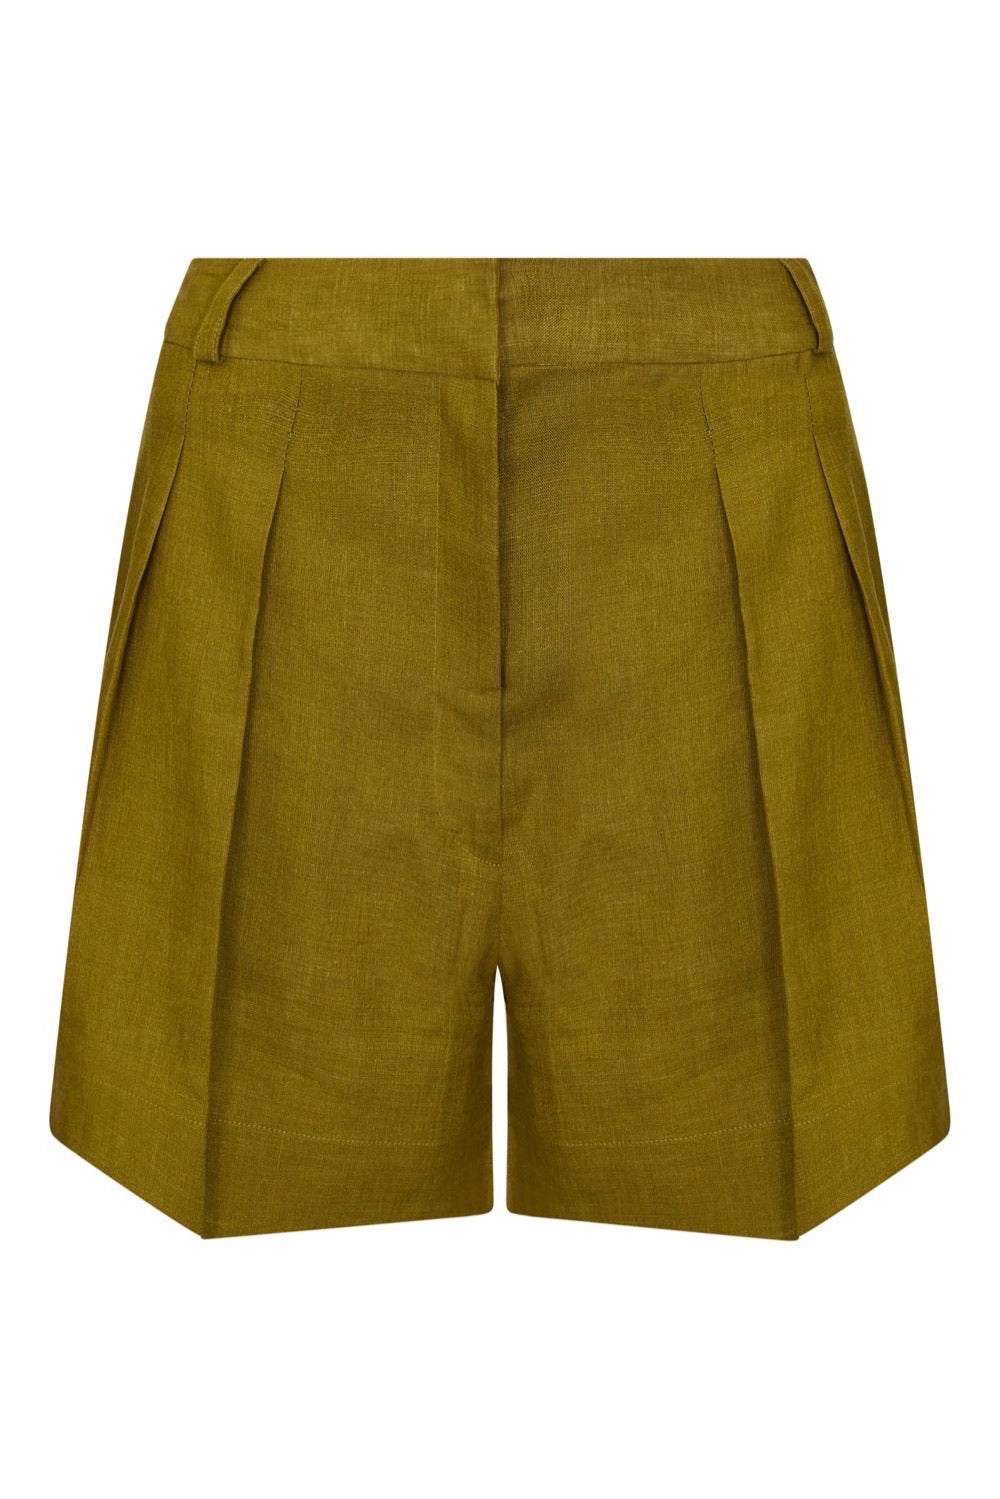 ASCENO MADRID WARM OLIVE SHORT